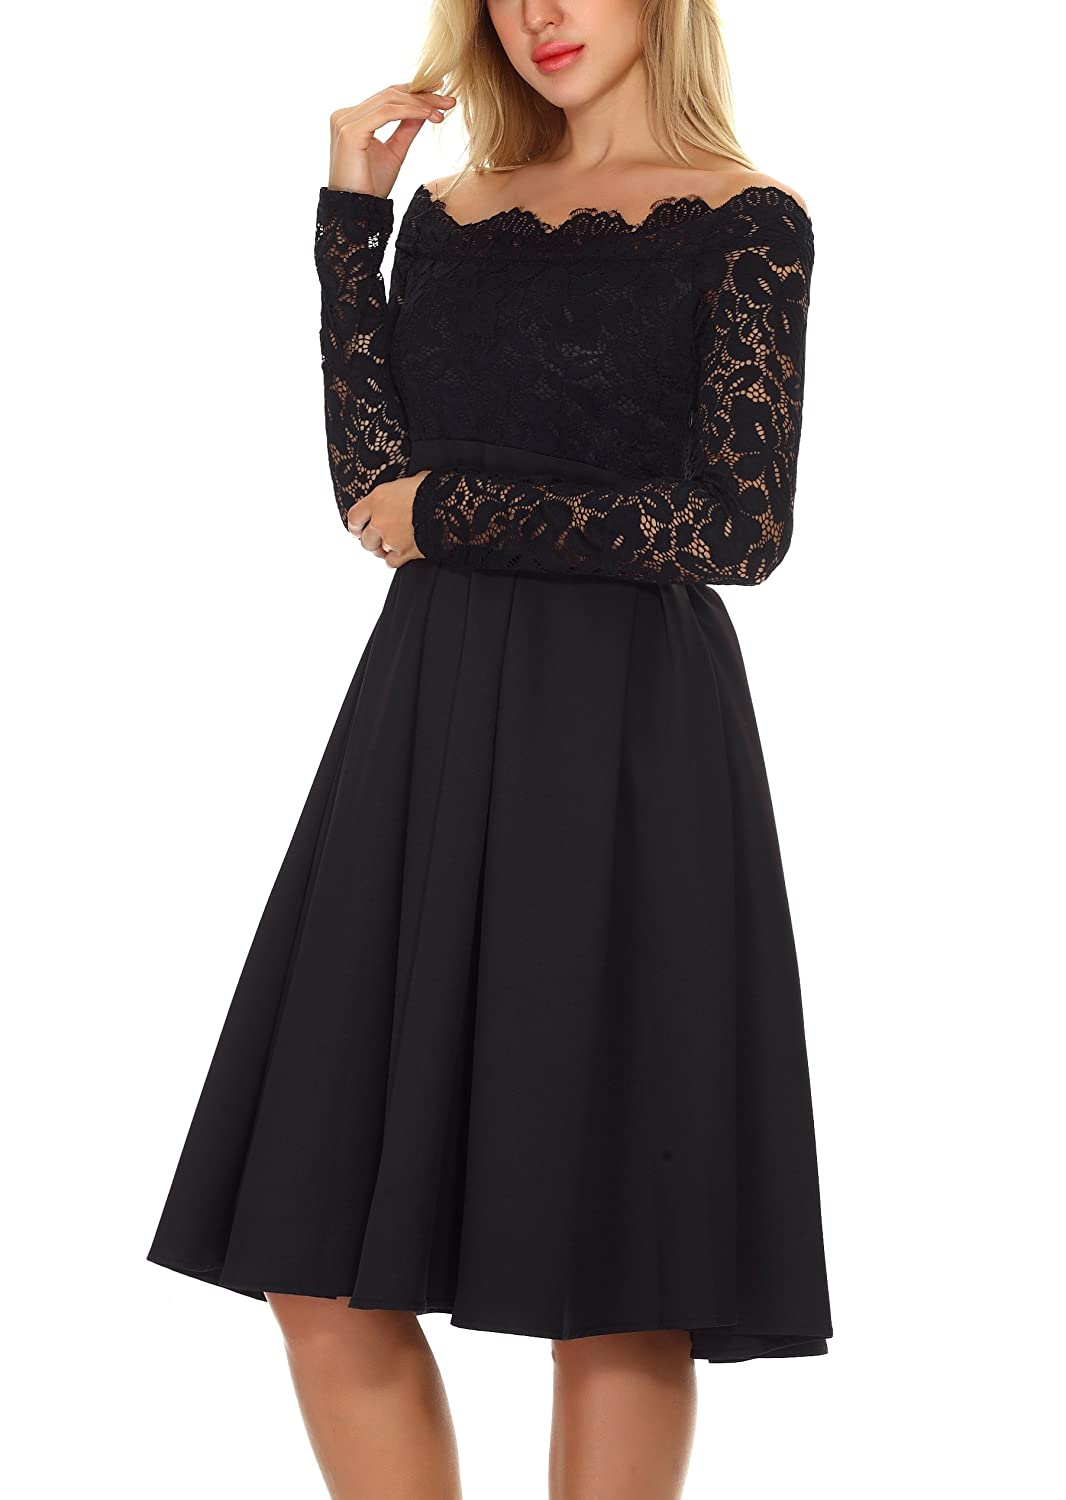 DAFUNNA Womens Vintage Floral Lace Long Sleeve Off-Shoulder Swing Dress Formal Cocktail Party Dress at Amazon Womens Clothing store: